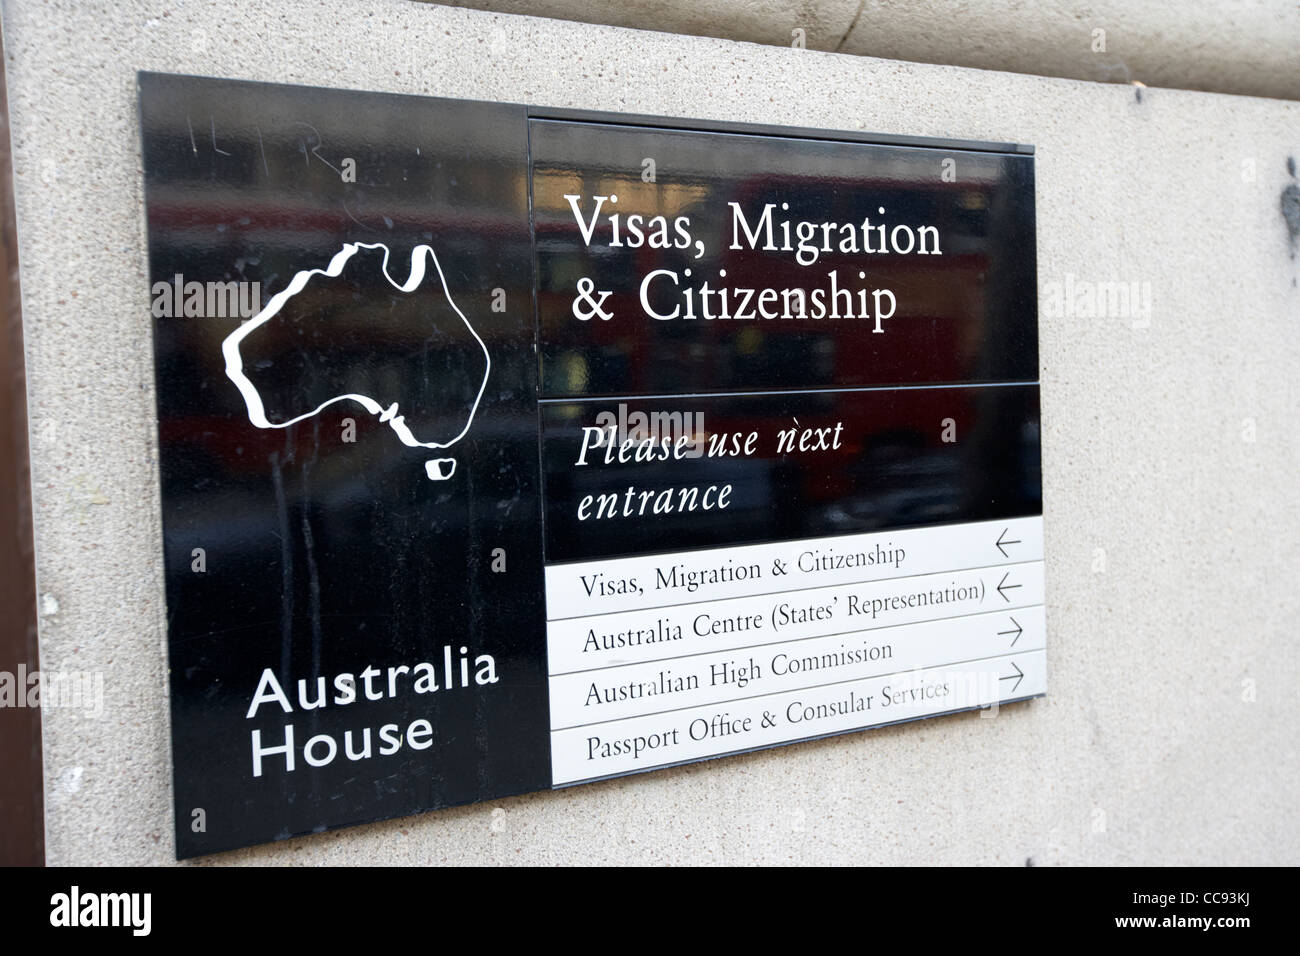 australia house home to the high commission of australia sign for visa migration and citizenship London England - Stock Image